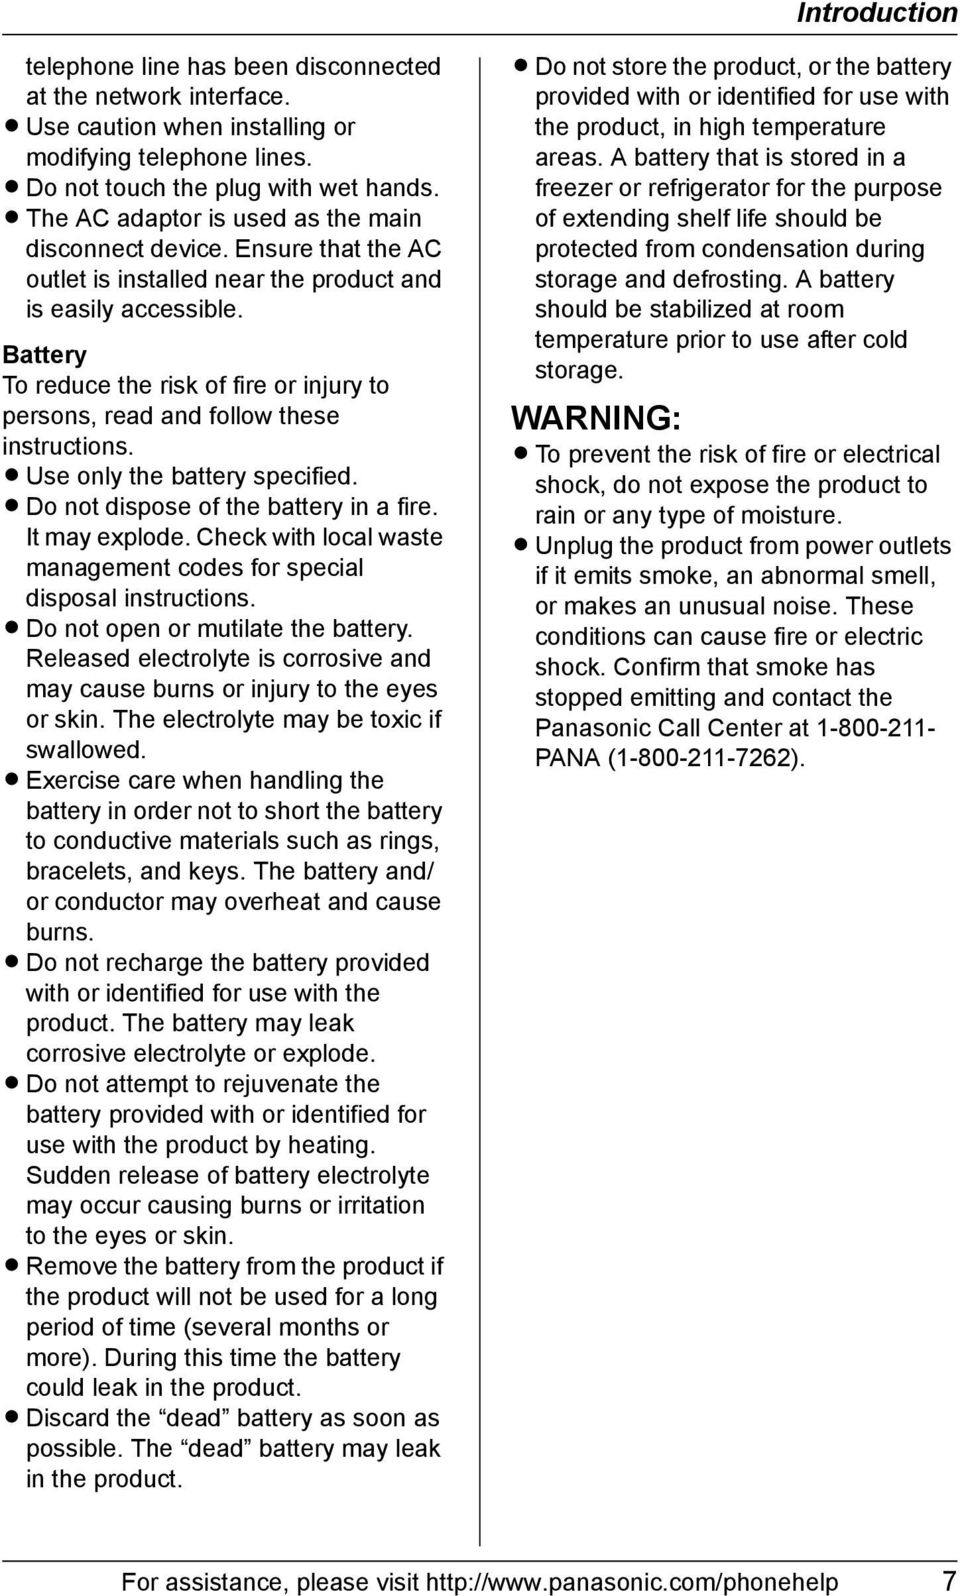 Battery To reduce the risk of fire or injury to persons, read and follow these instructions. L Use only the battery specified. L Do not dispose of the battery in a fire. It may explode.